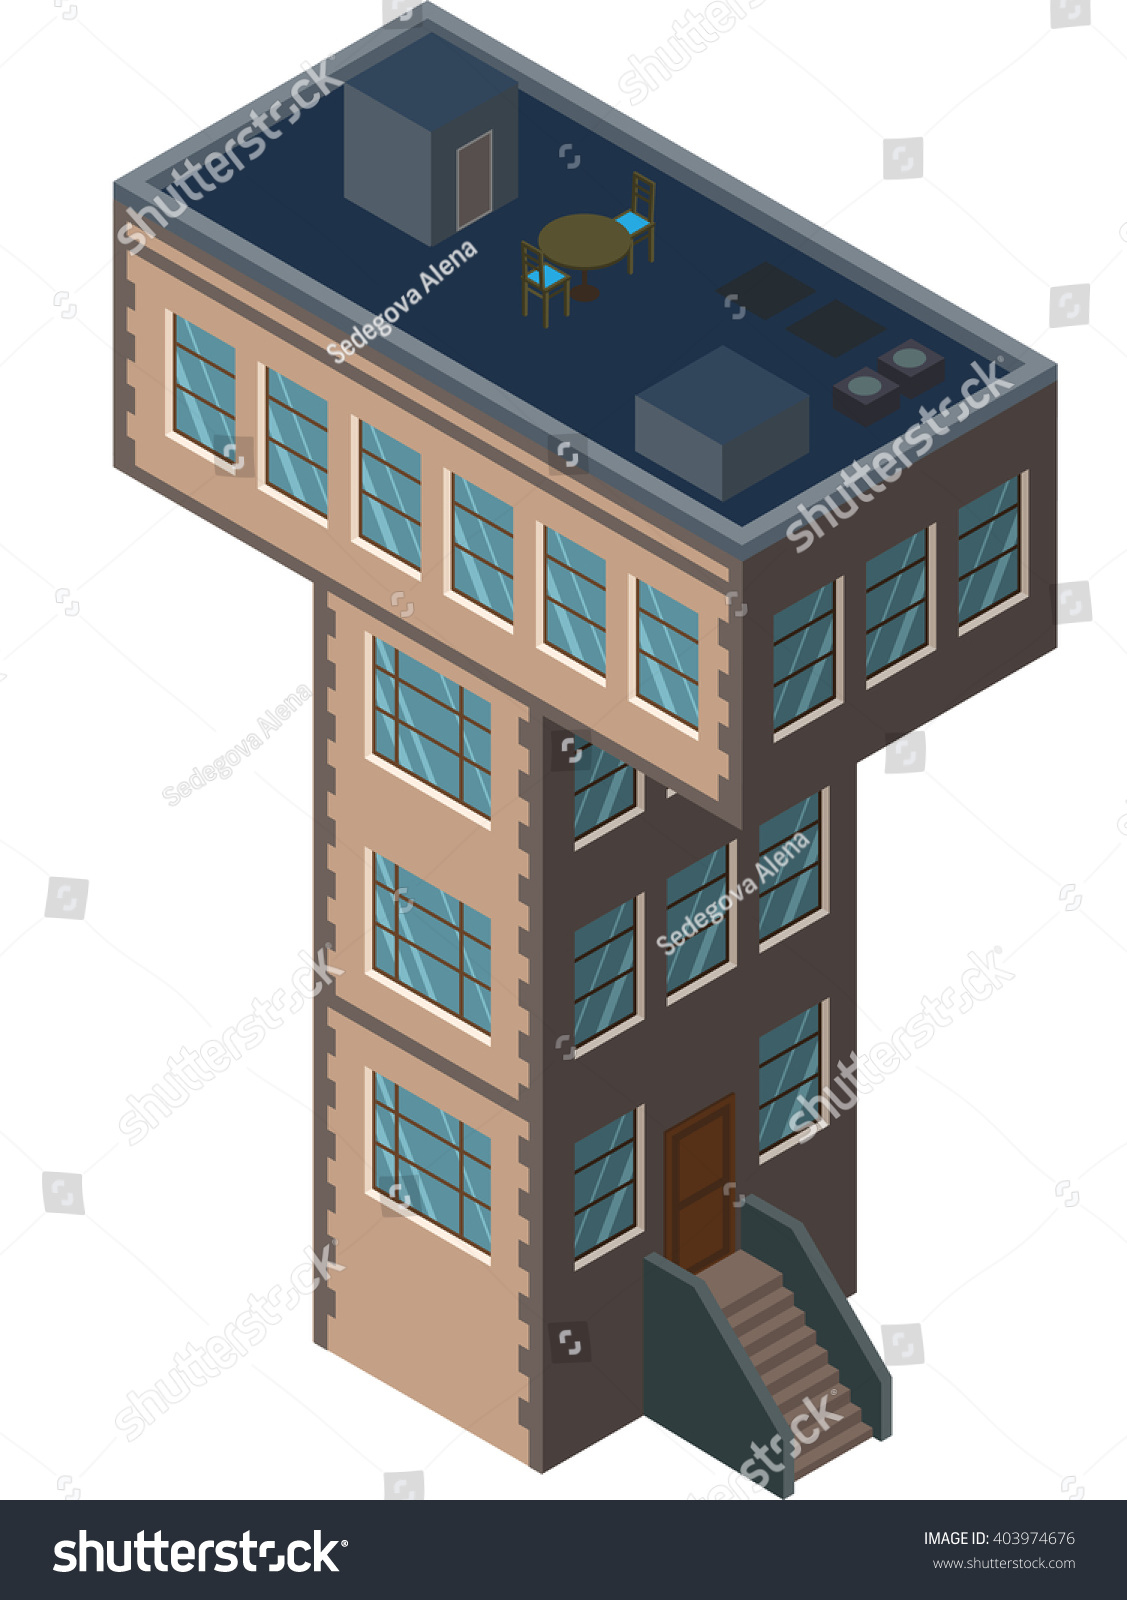 letter t house shaped as city element building isometric